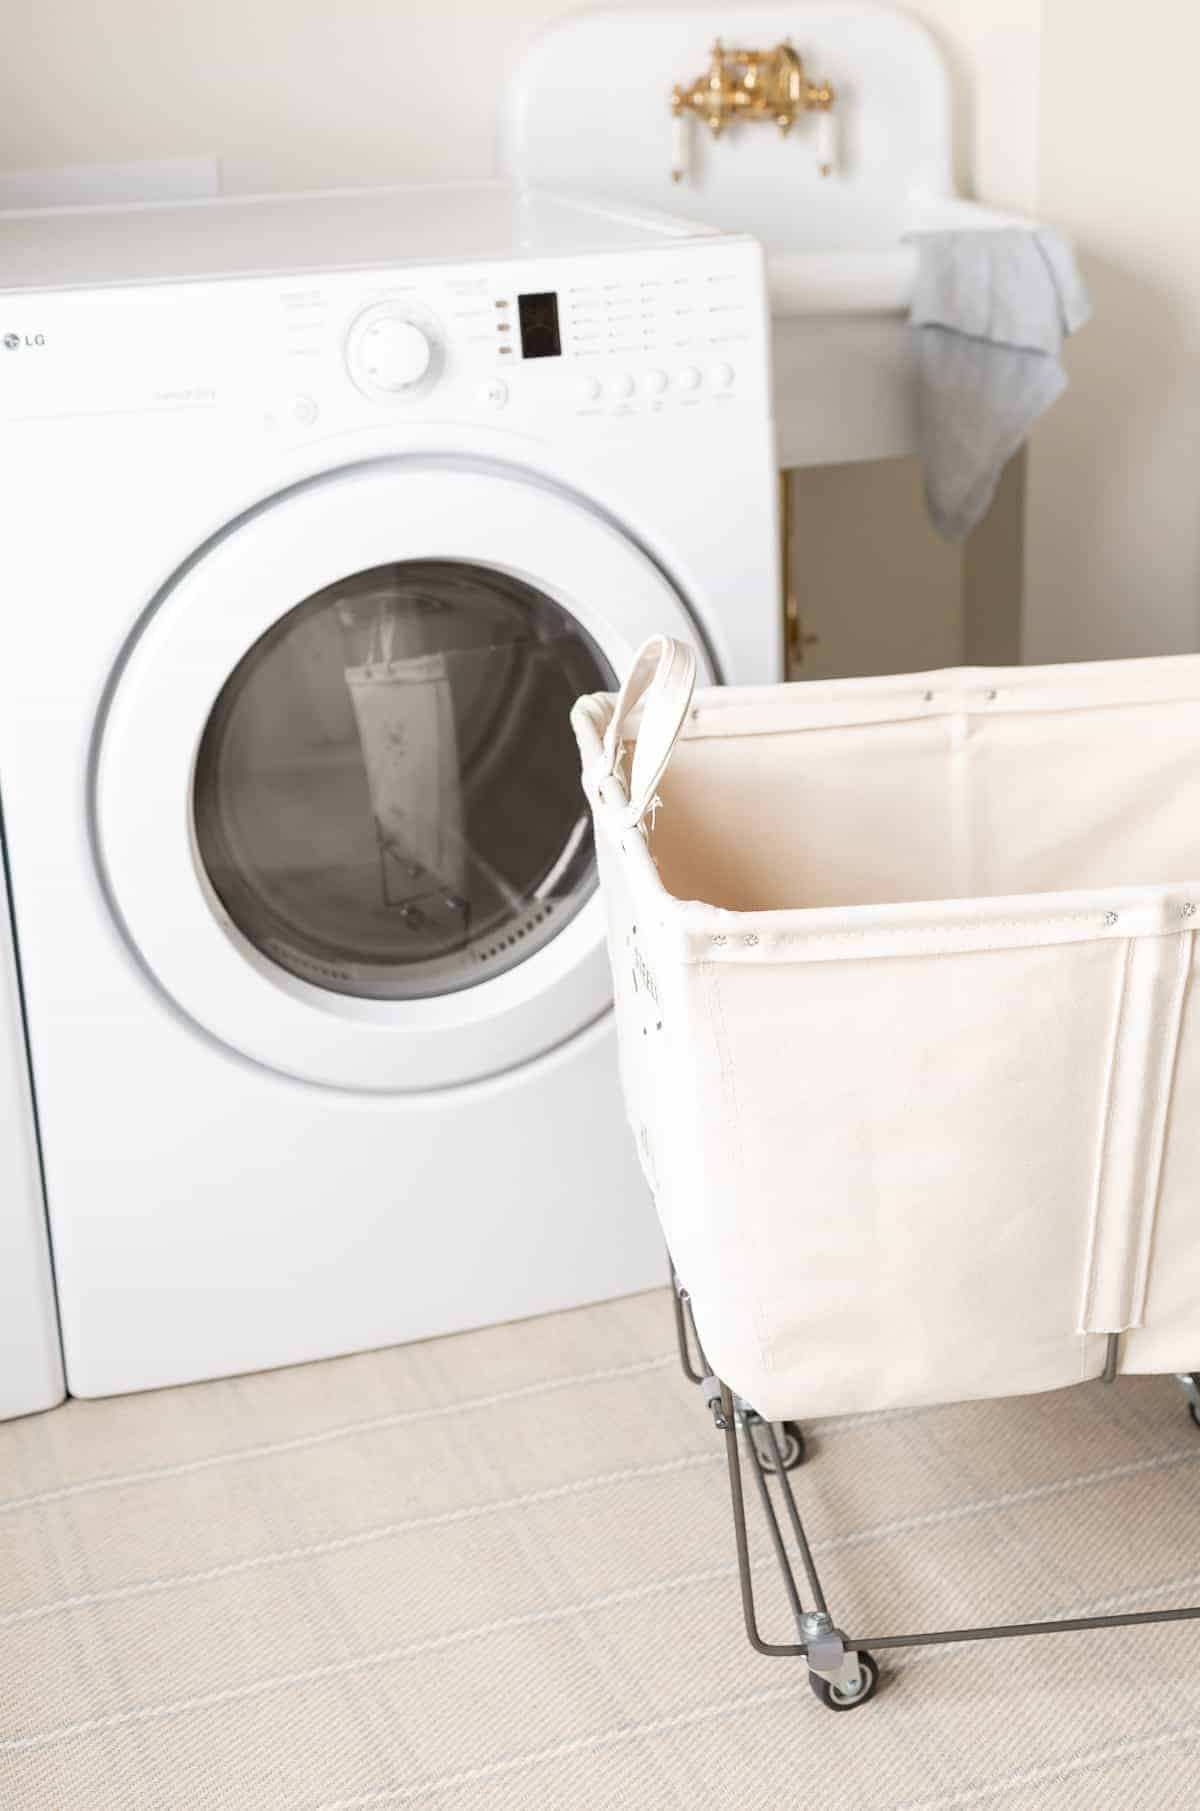 A basket of rolling clothes with a washer and dryer in the bottom.